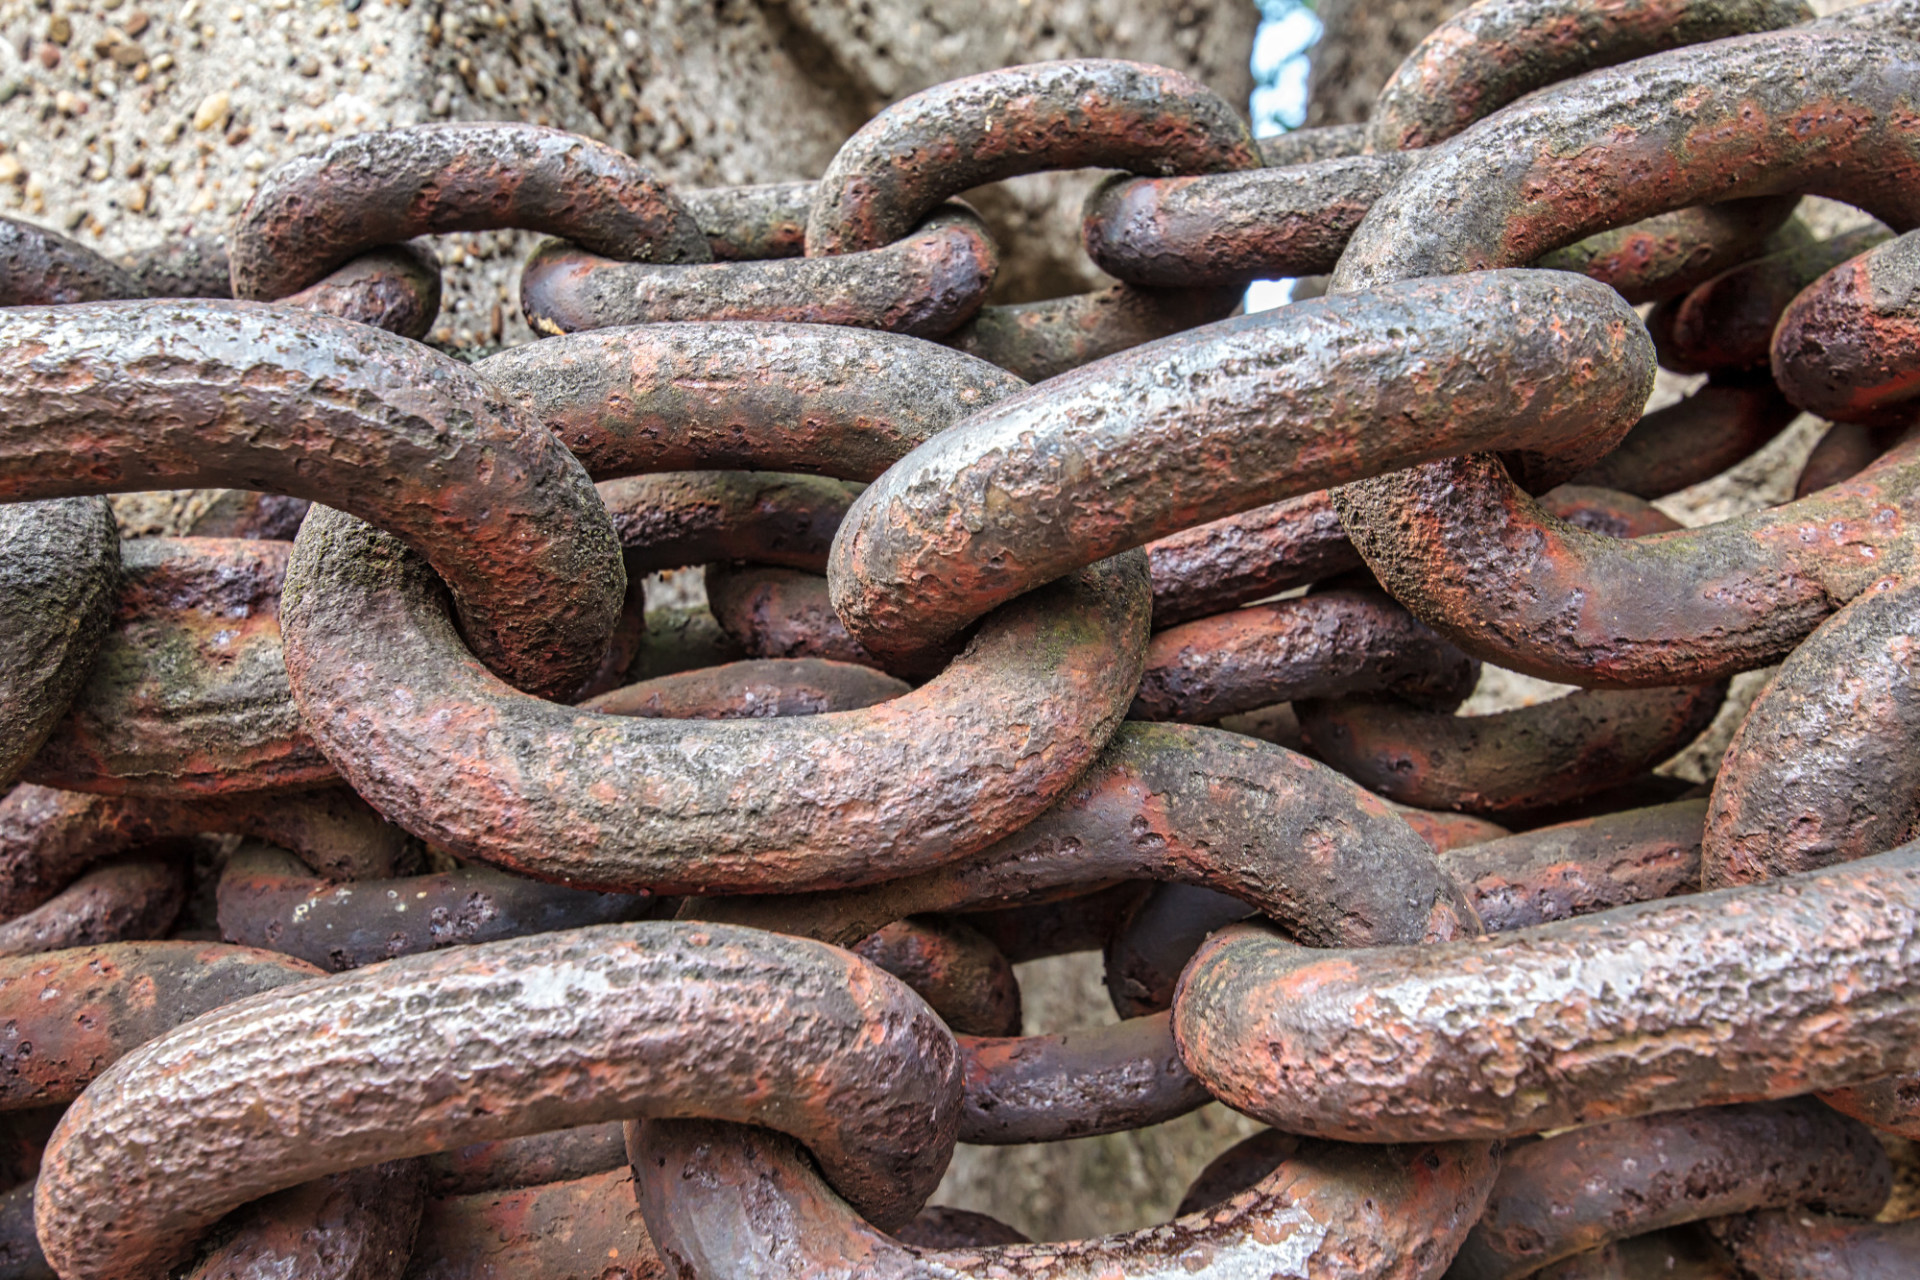 Large iron chains